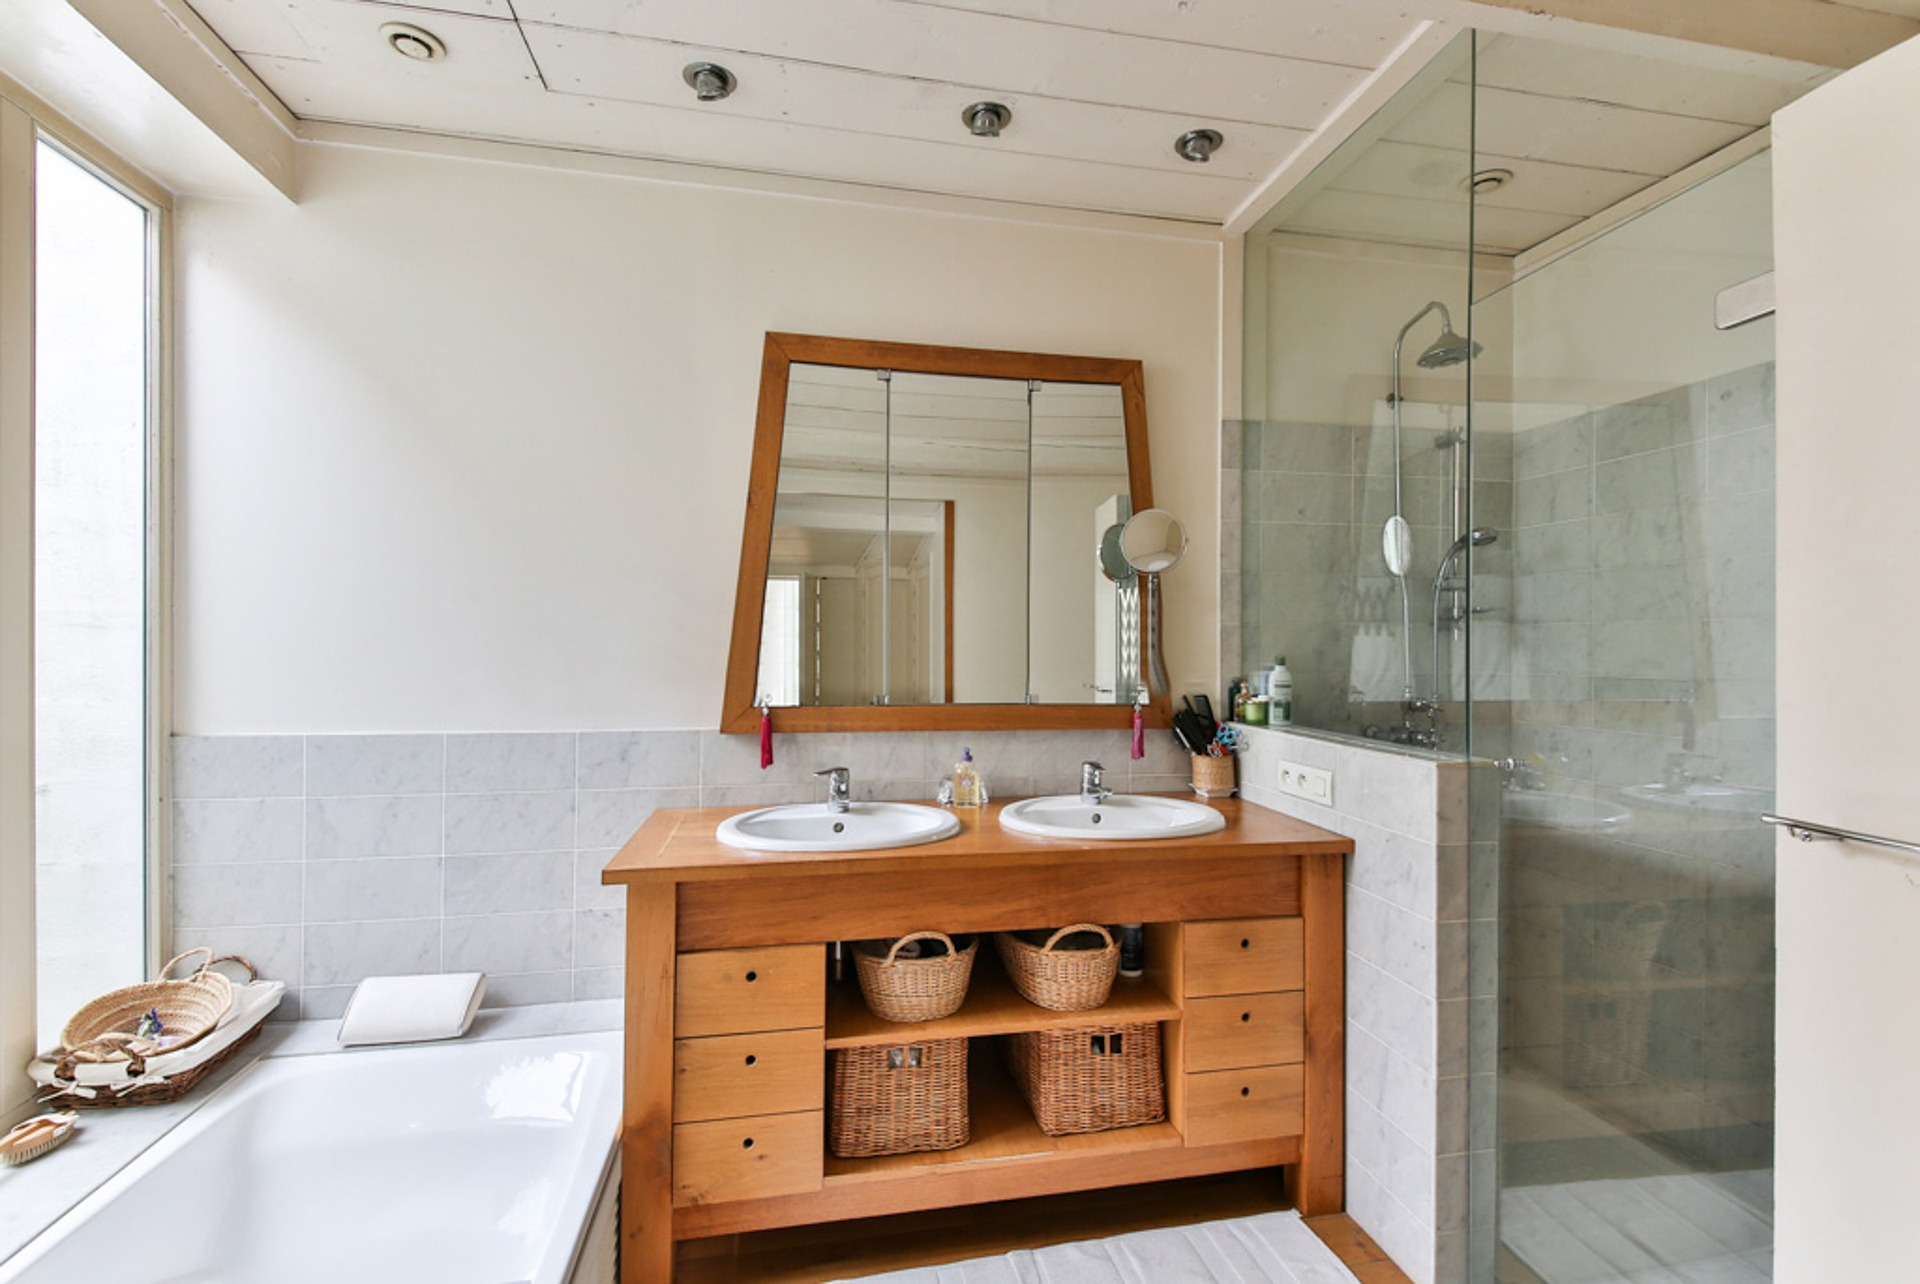 How to prevent bathroom humidity